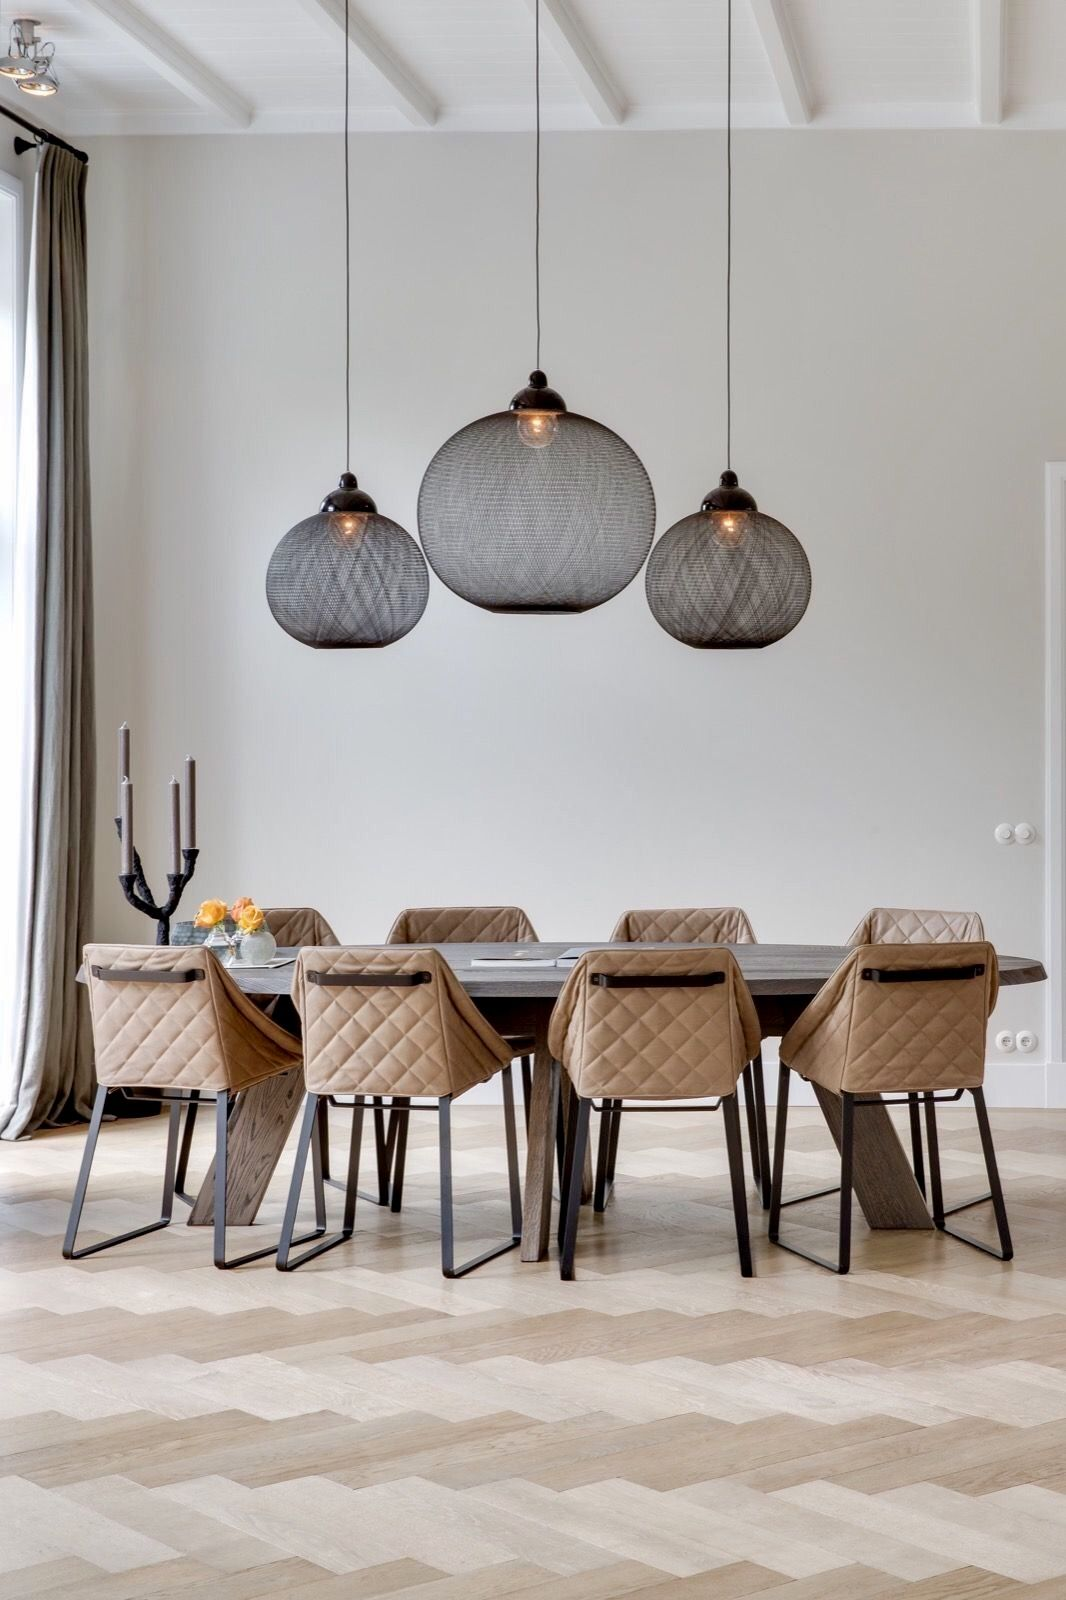 22 Best Ideas Of Pendant Lighting For Kitchen, Dining Room And Bedroom    Home And Gardens